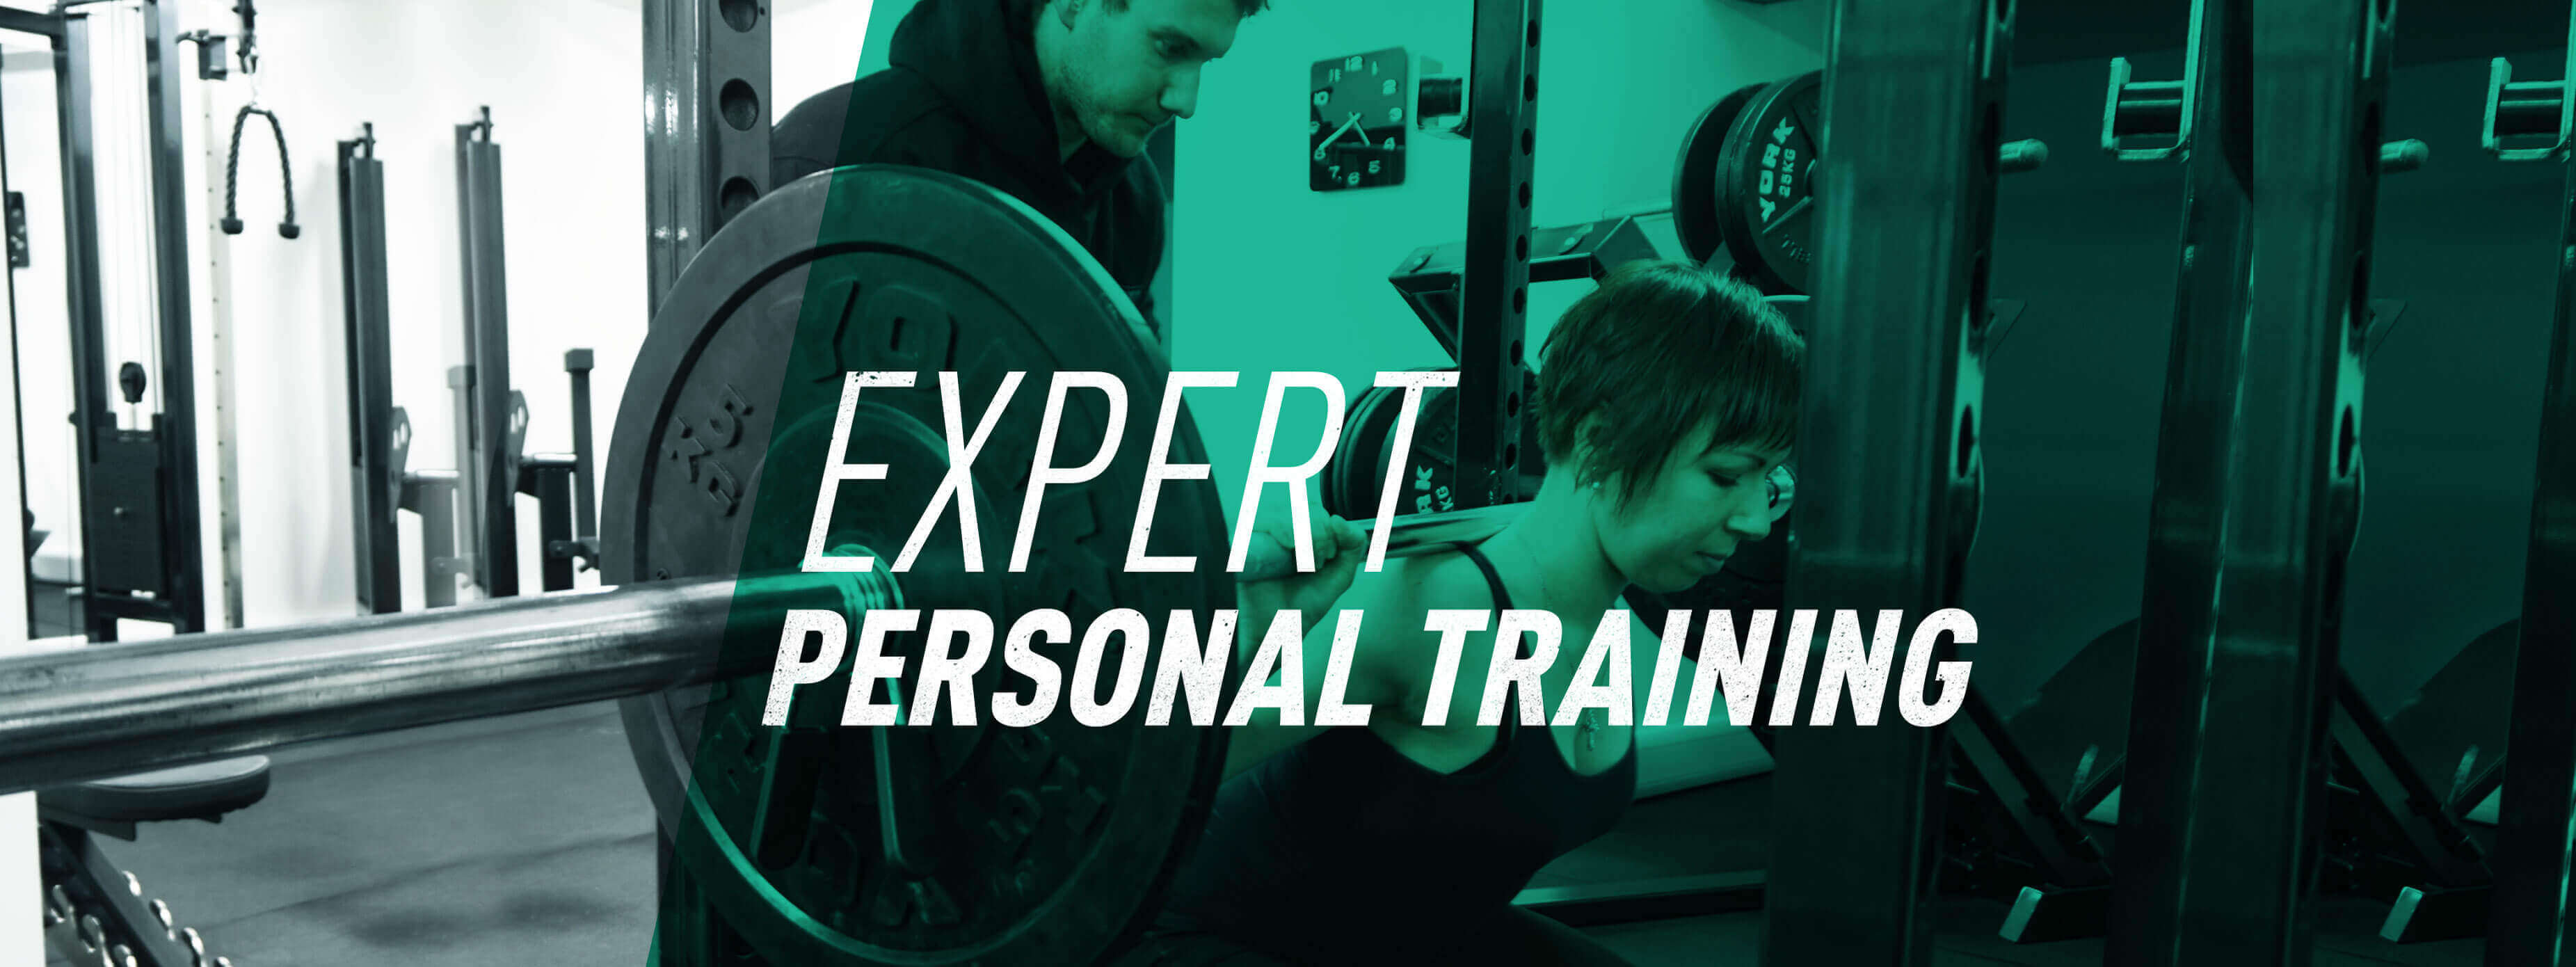 London Bridge Personal Training